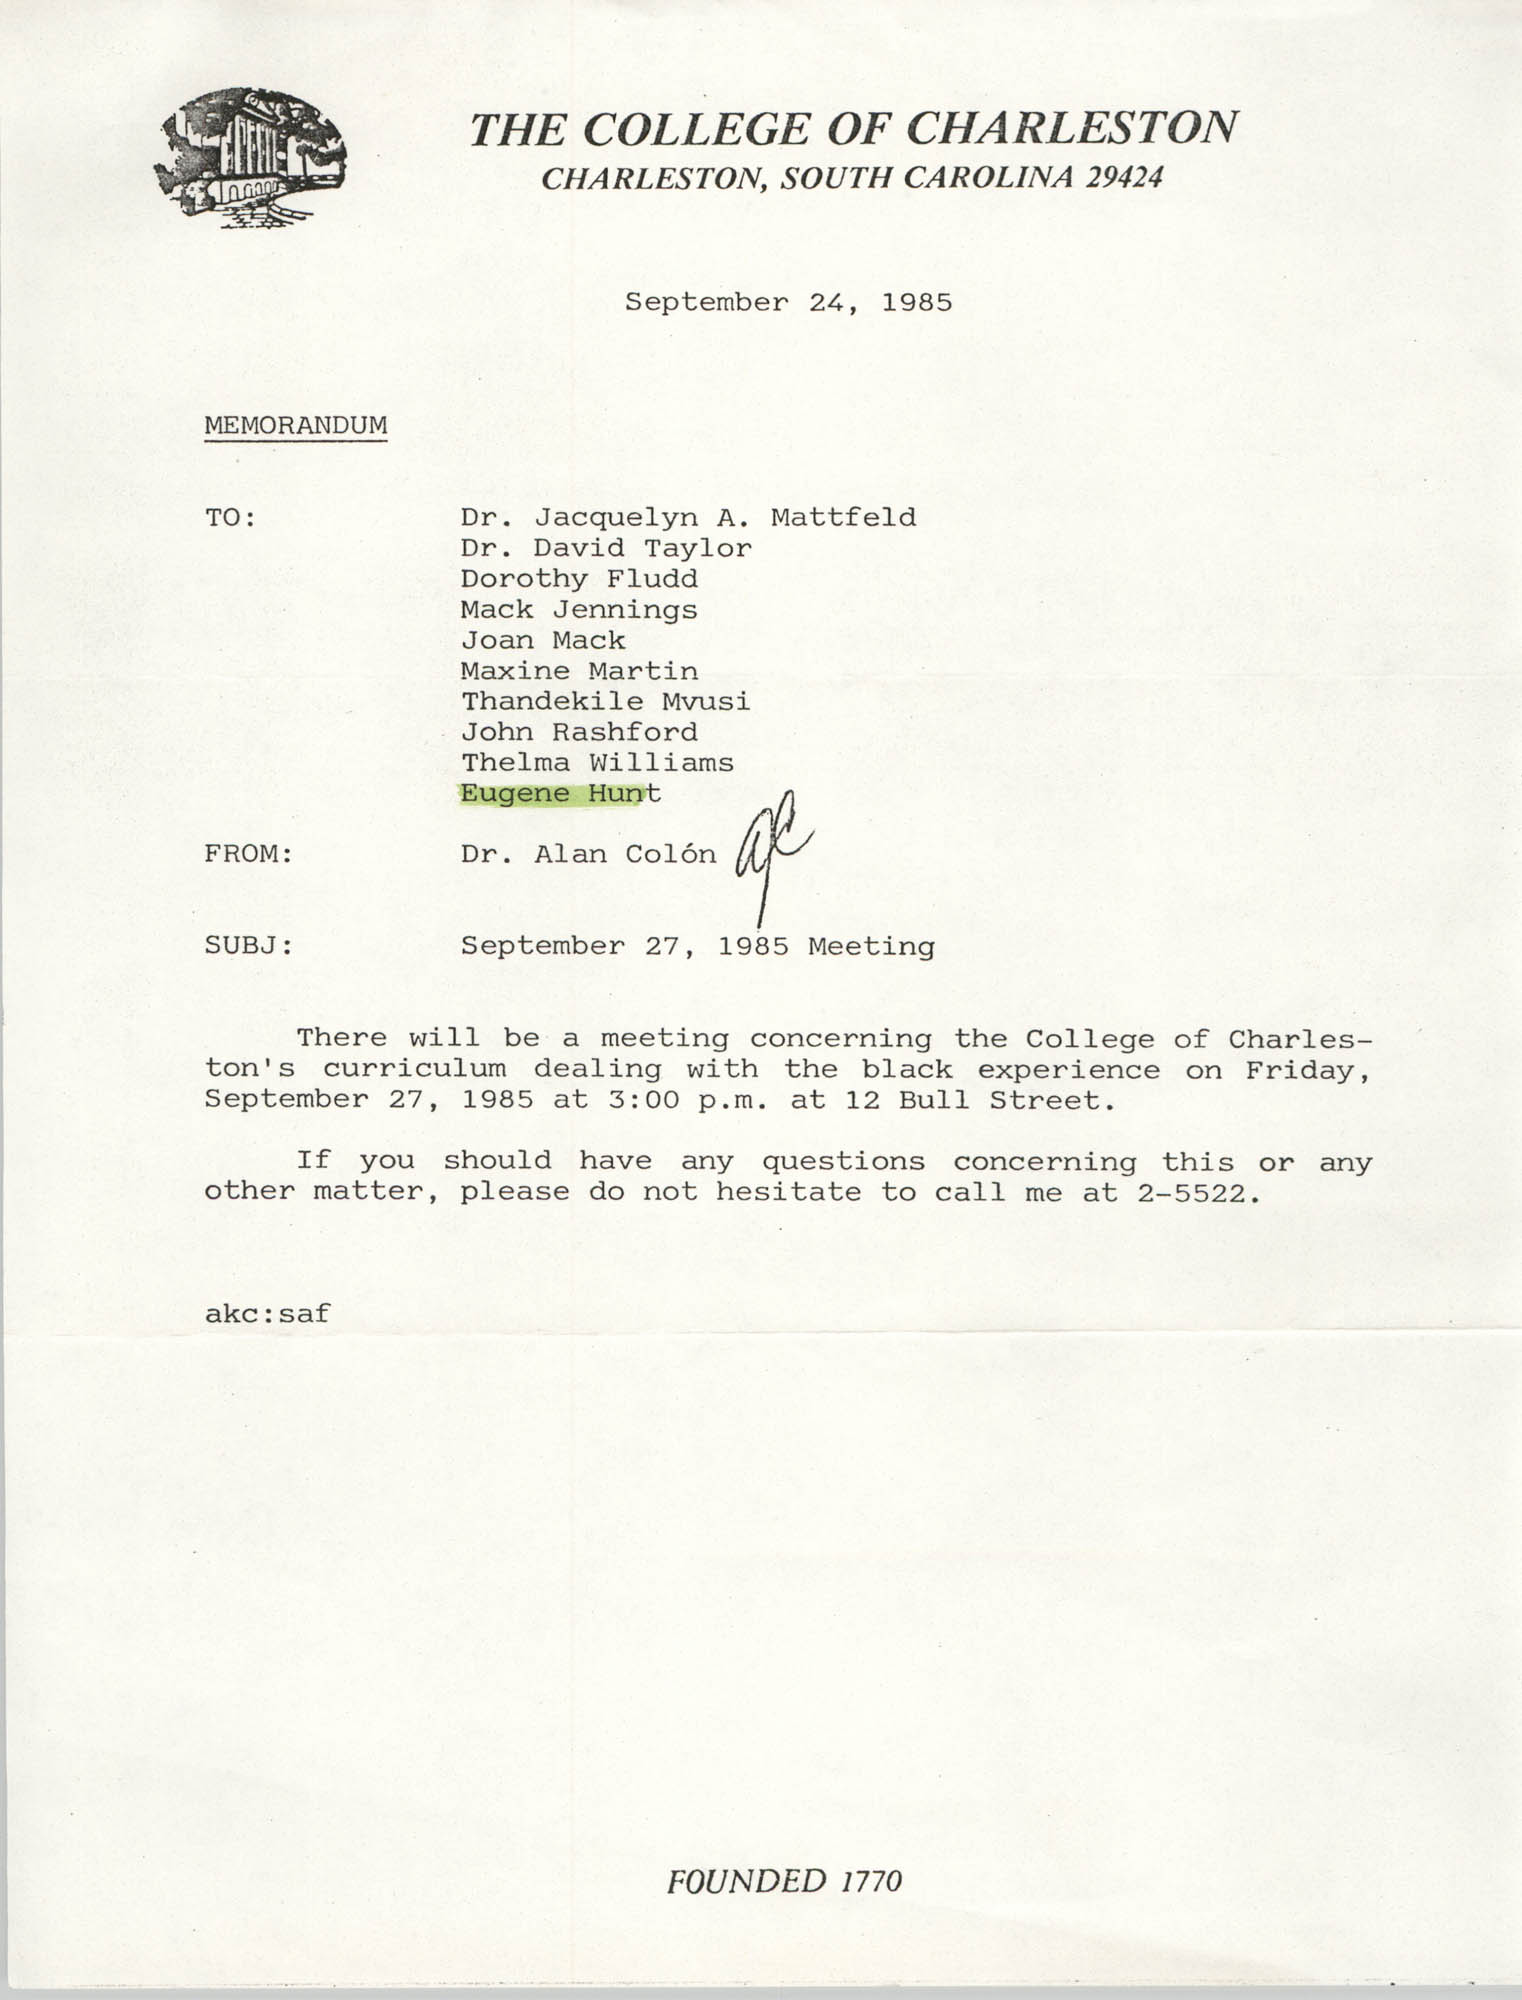 College of Charleston Memorandum, September 24, 1985